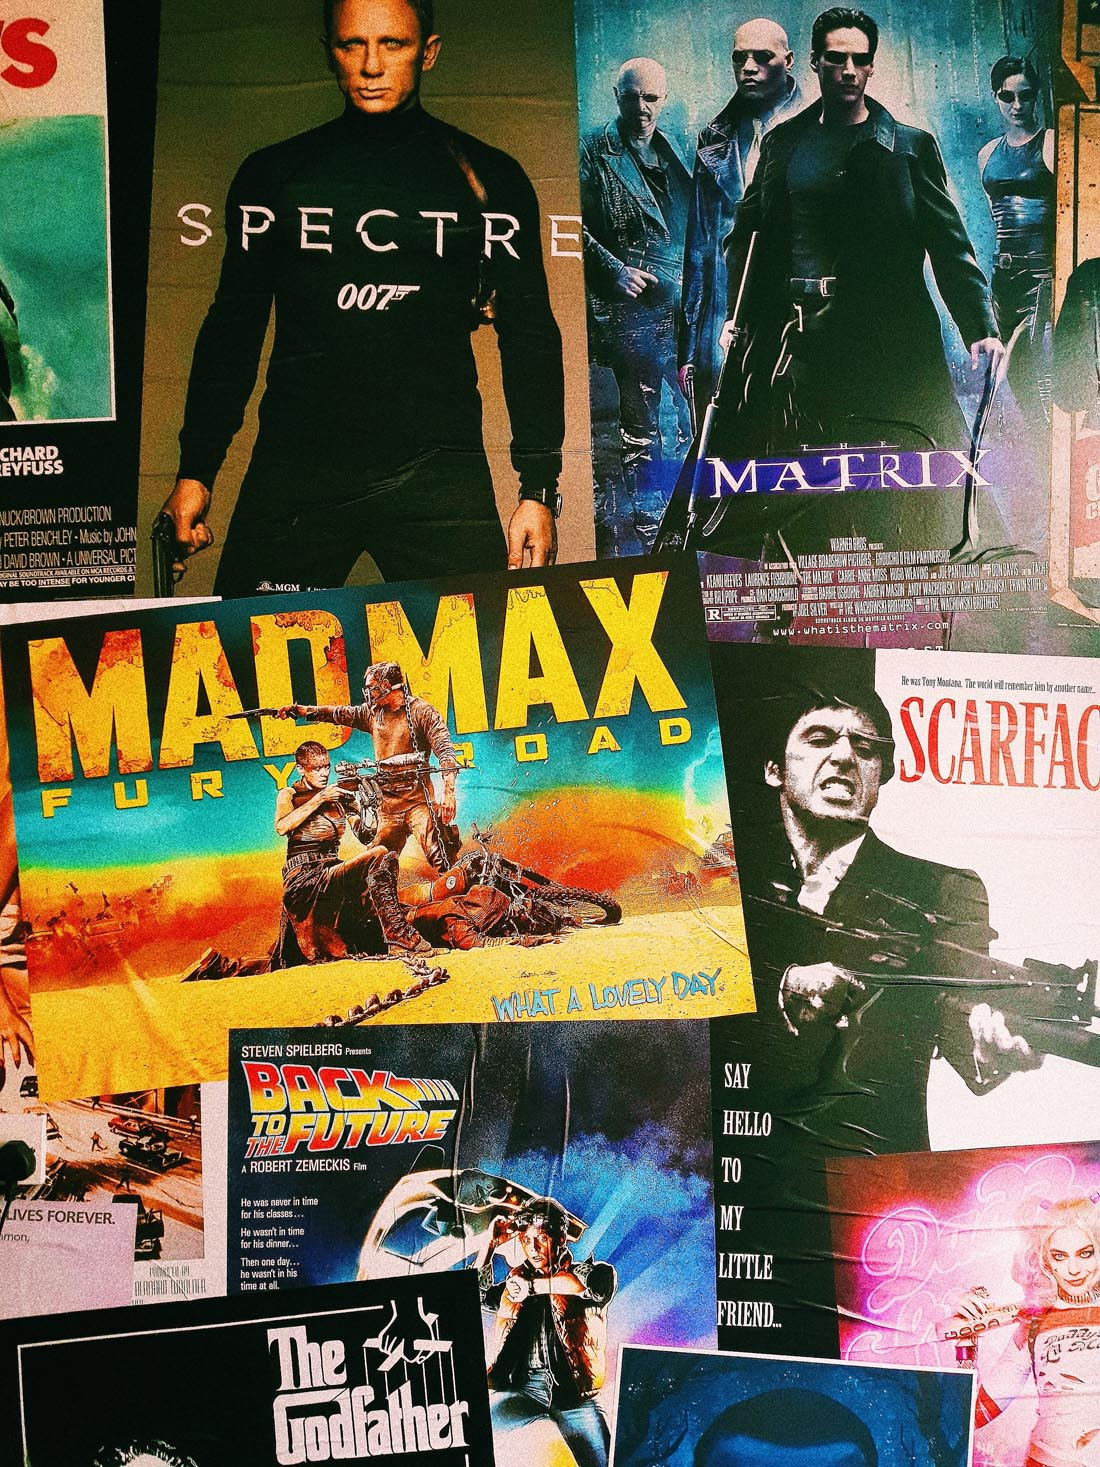 Best Place to Sell Movie Posters and Vintage TV Show Collectibles